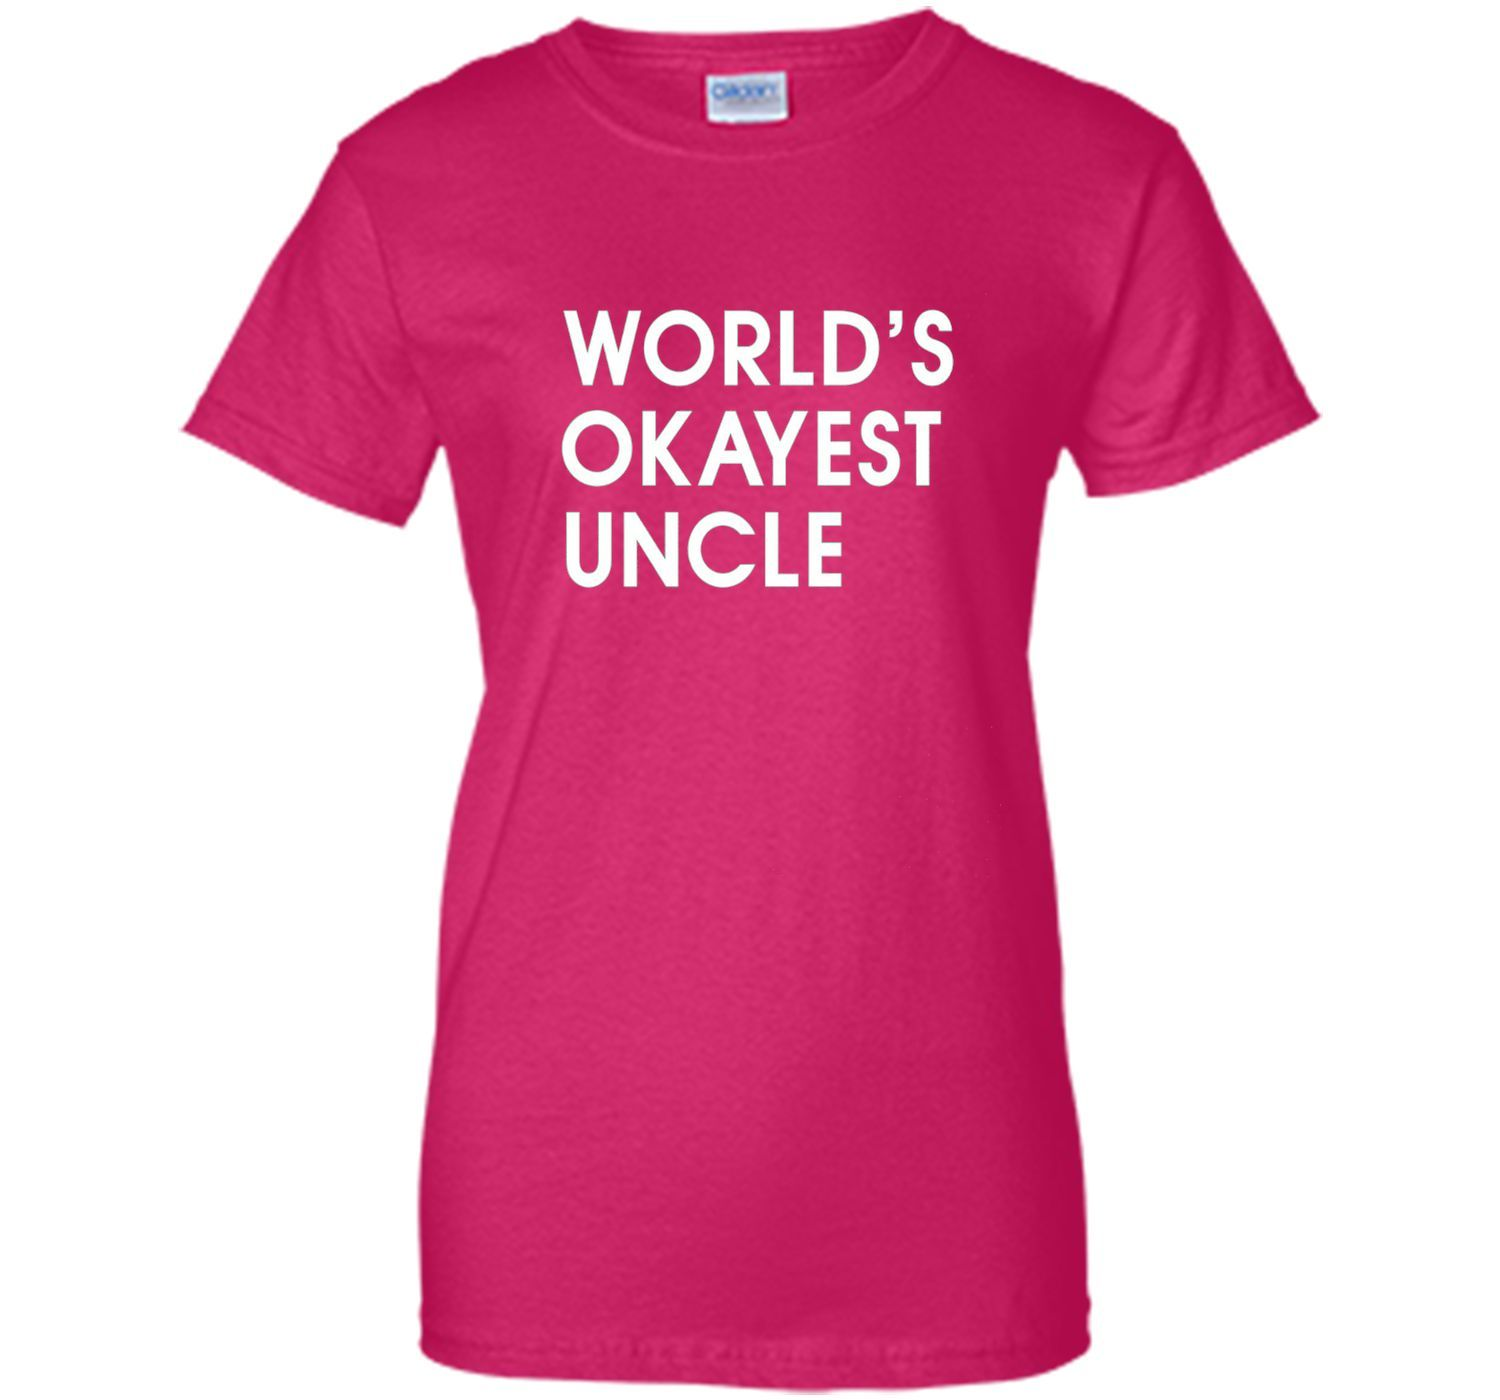 Men's World's Okayest Uncle T-Shirt Uncle 's Day Shirt Uncle Gift